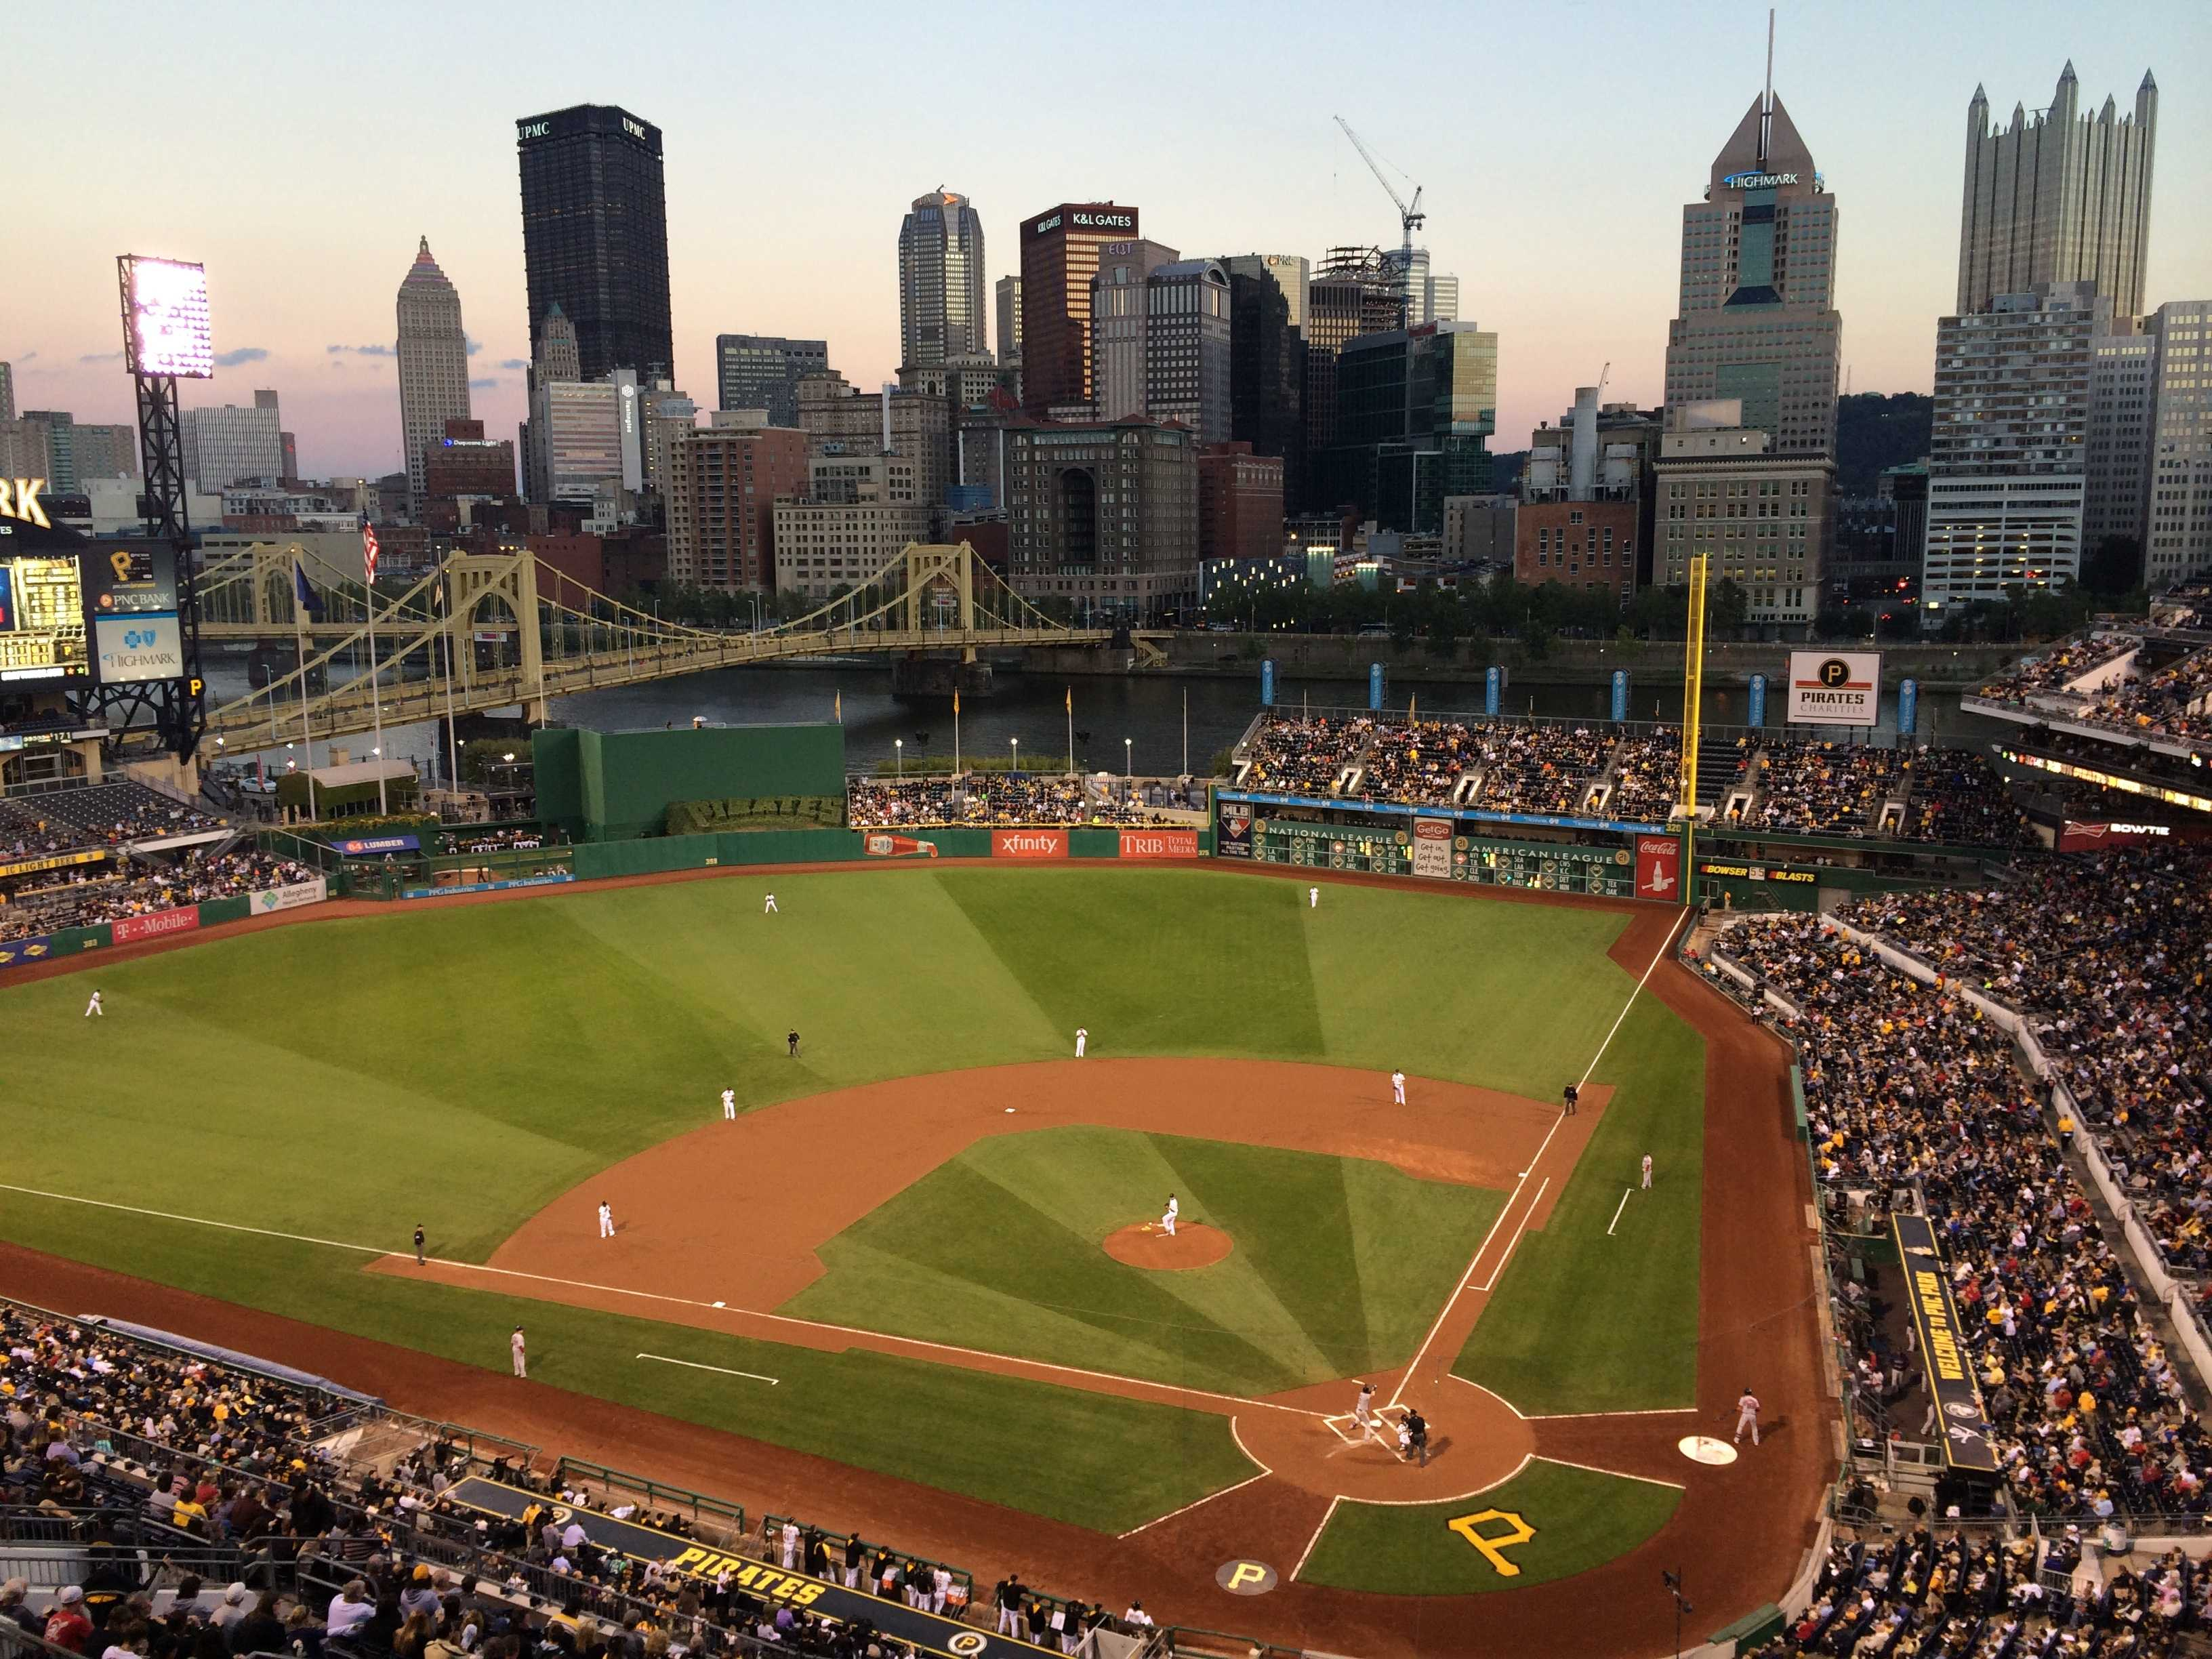 PNC Park Rated 2nd Best Overall MLB Ballpark In Washington Post Guide